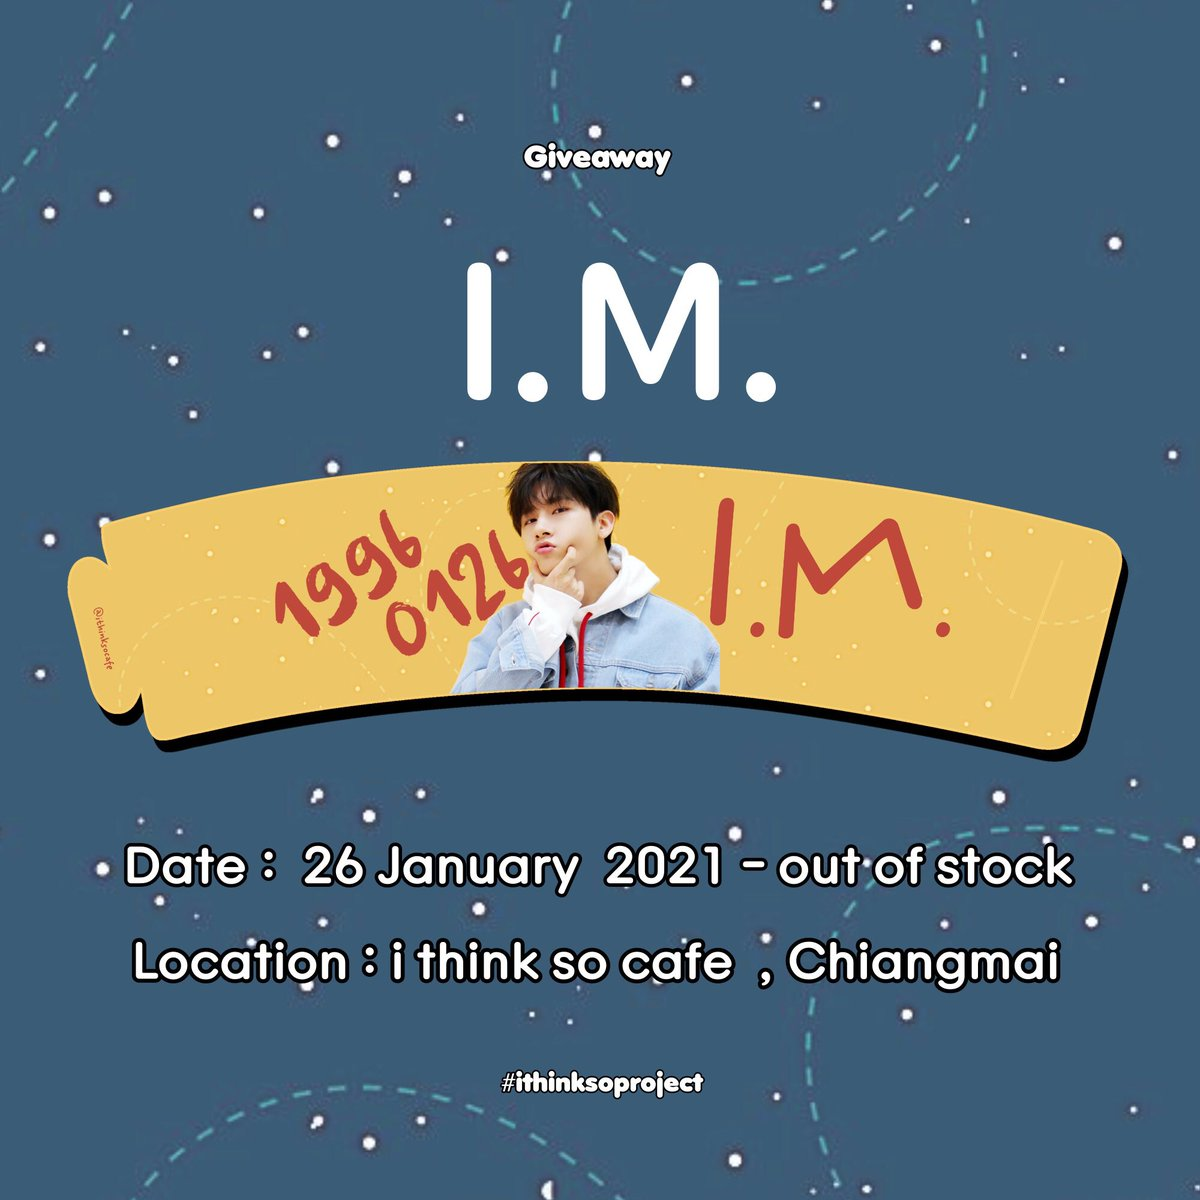 Giveaway Cupsleeve I.M.  📷 : #ithinksoproject  Date :  26  January 2021 - out of stock  Location : i think so cafe  Chiangmai   #IM #MONSTA_X #HAPPYIMDAY